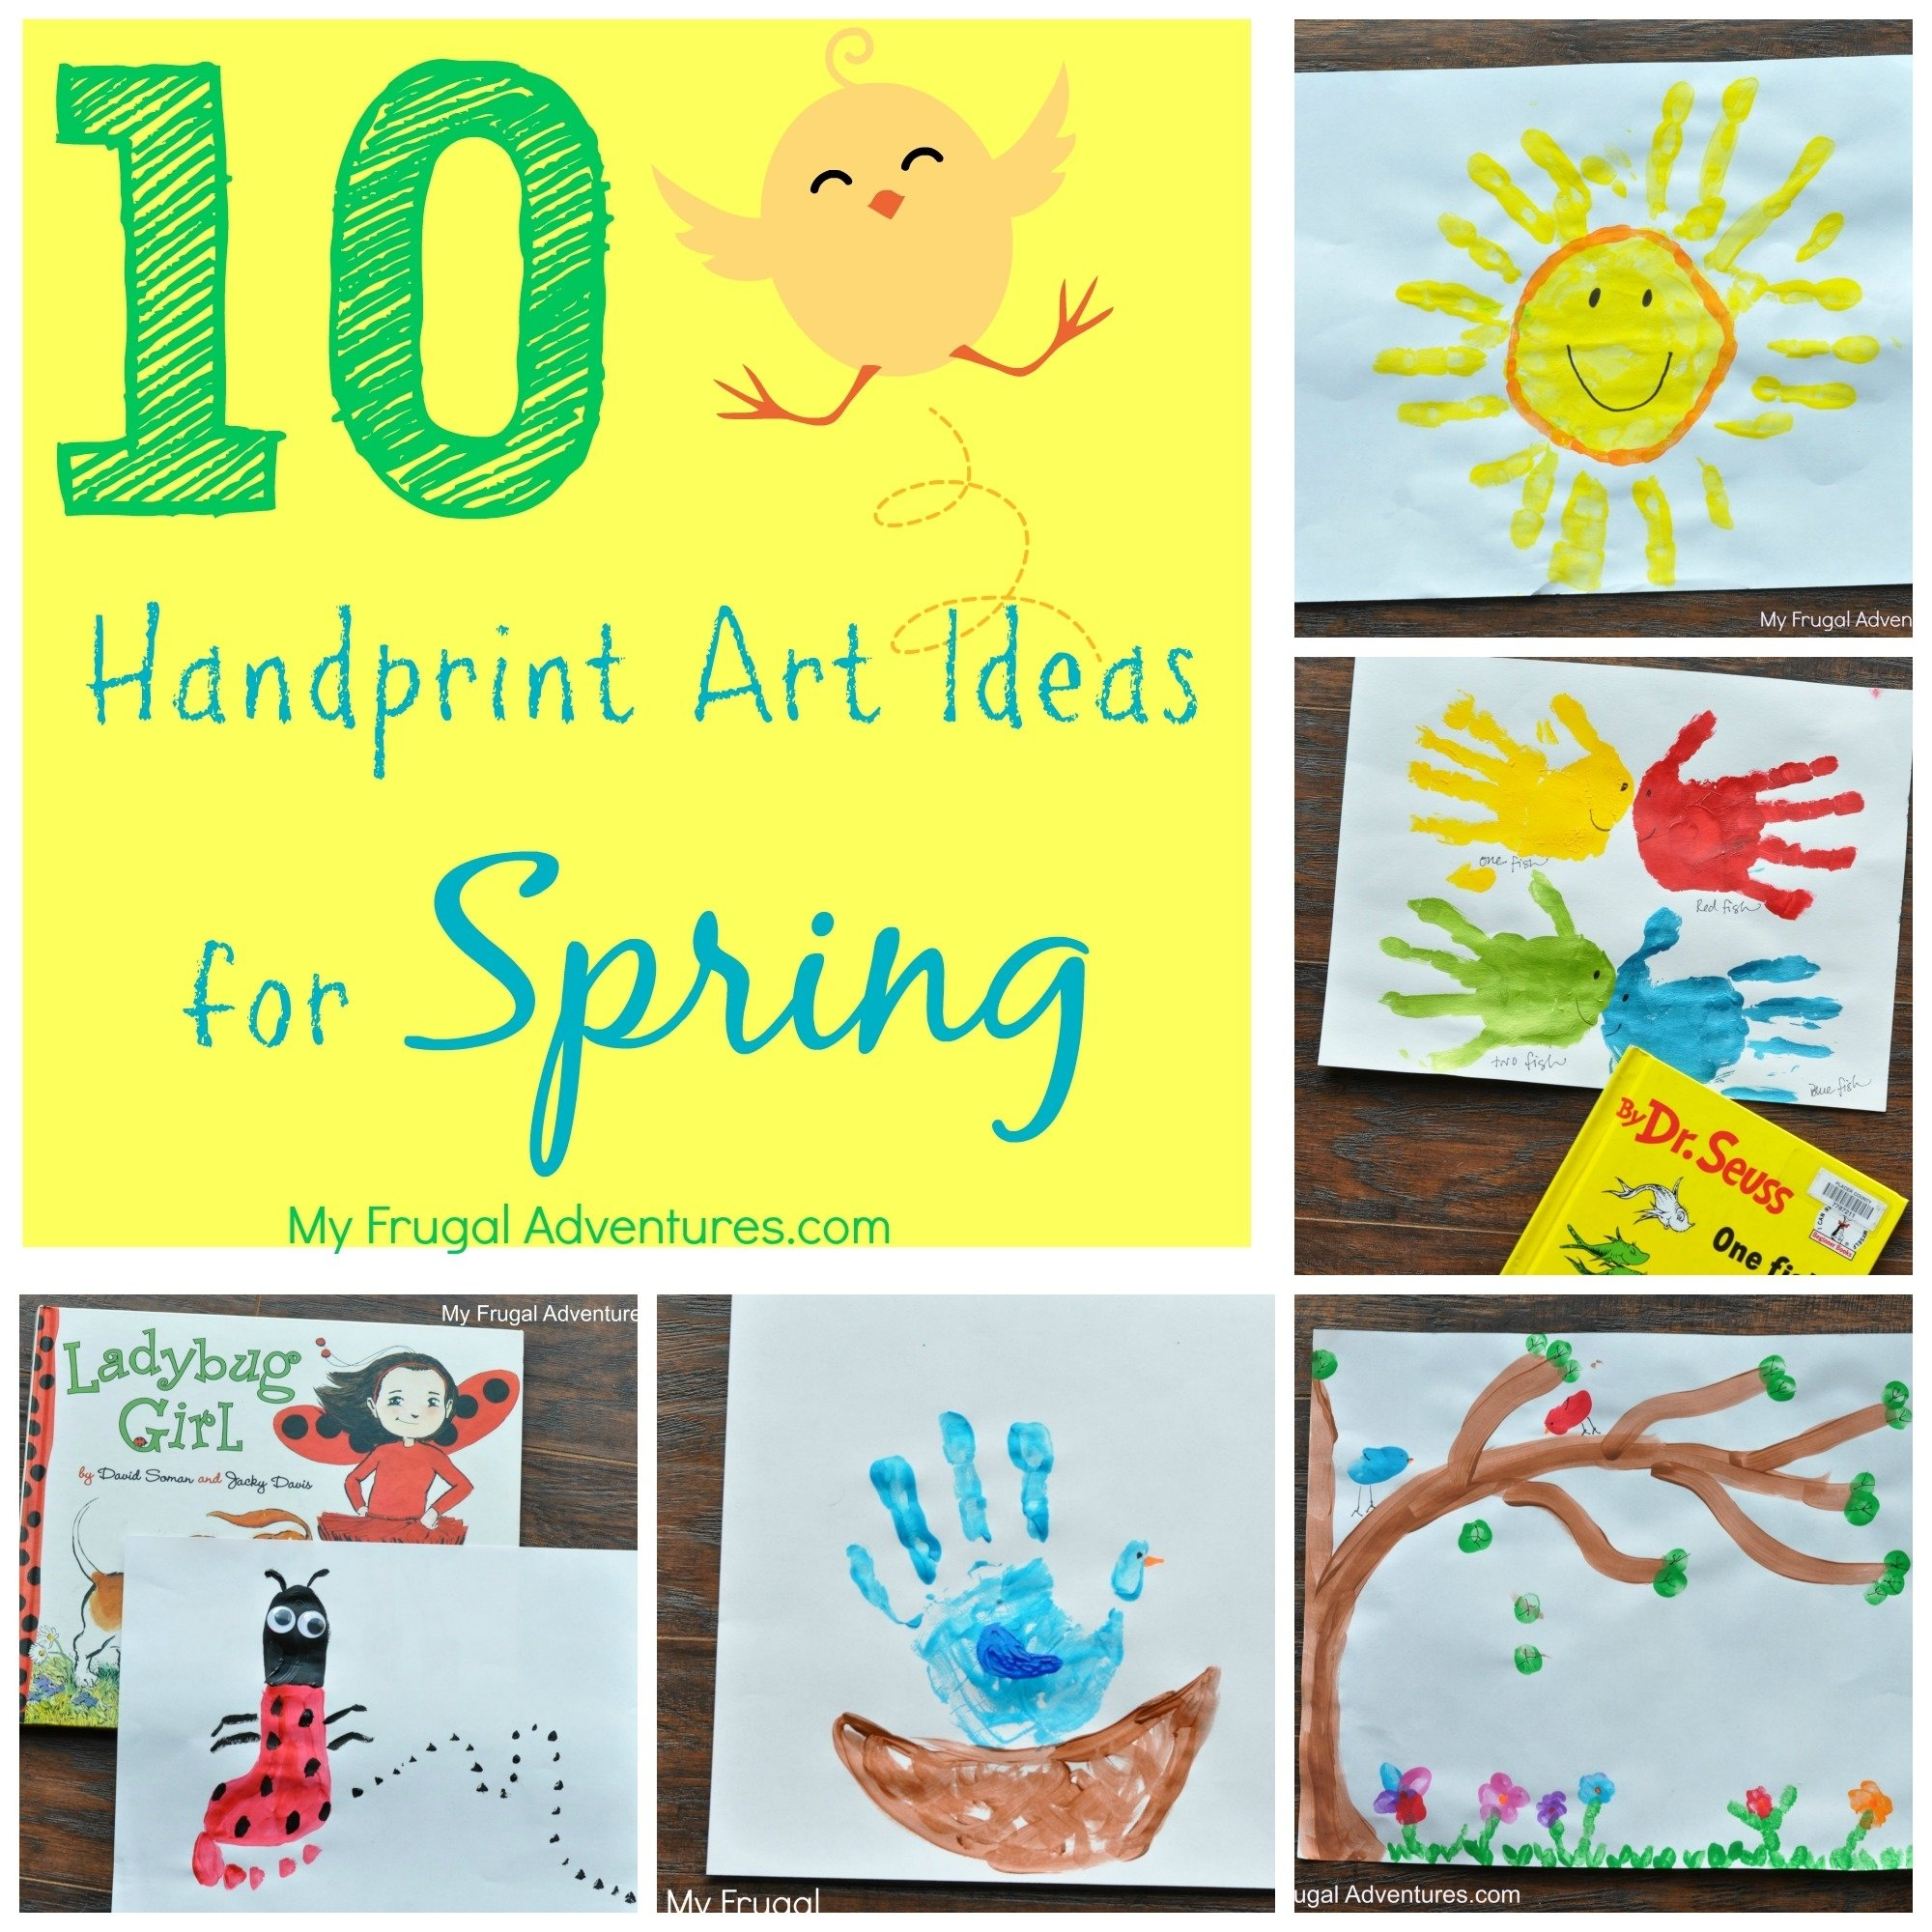 10 Fashionable Spring Arts And Crafts Ideas 10 spring handprint art ideas for children my frugal adventures 2020